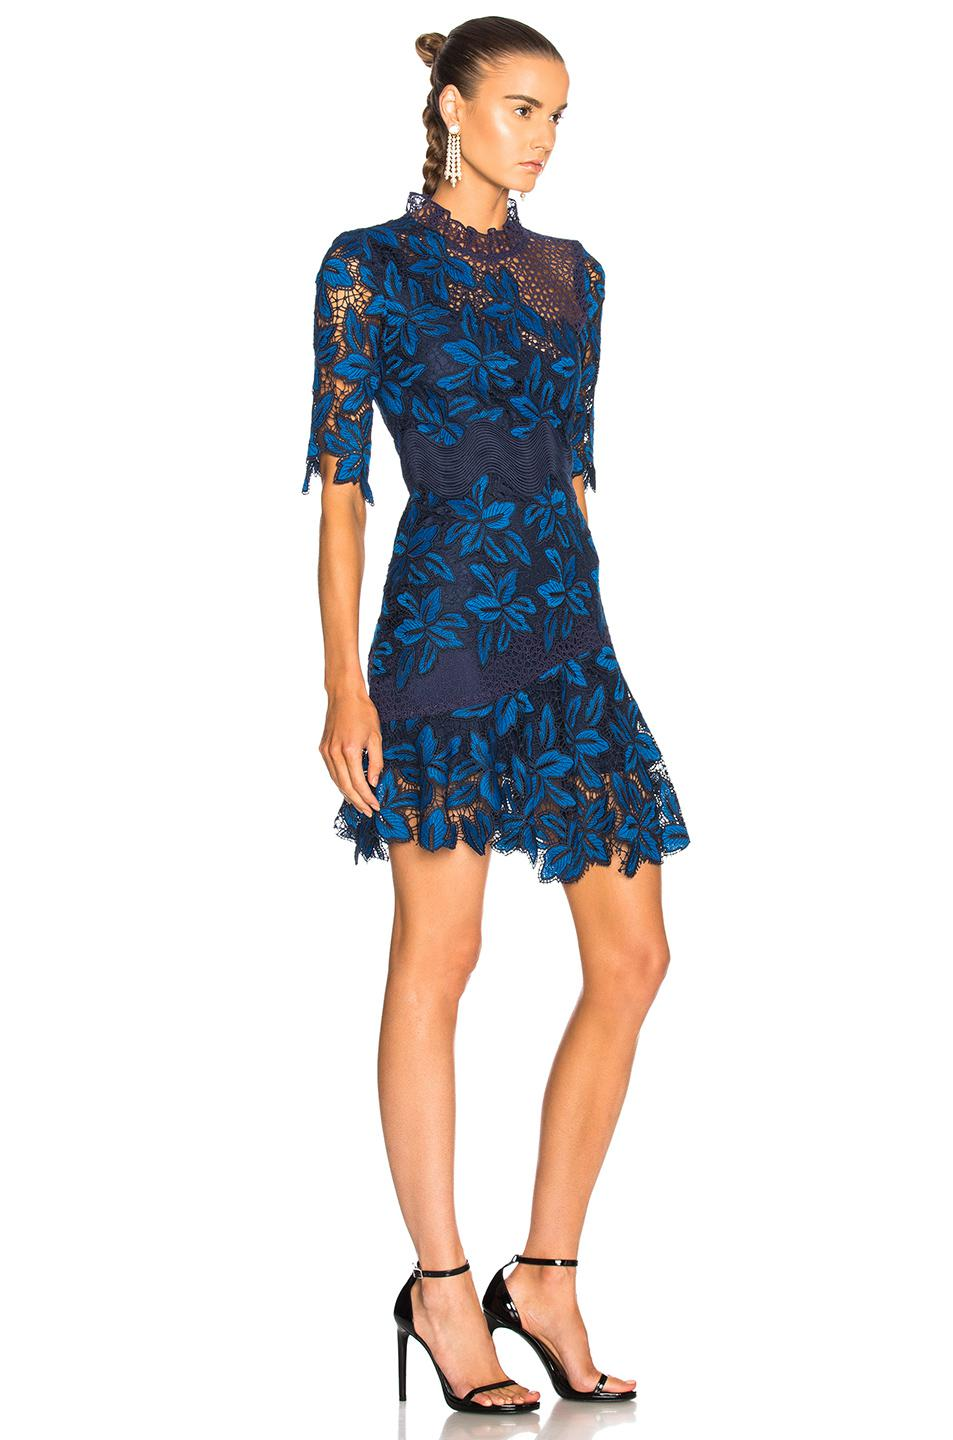 Mixed Lace Dress In Blue Multi